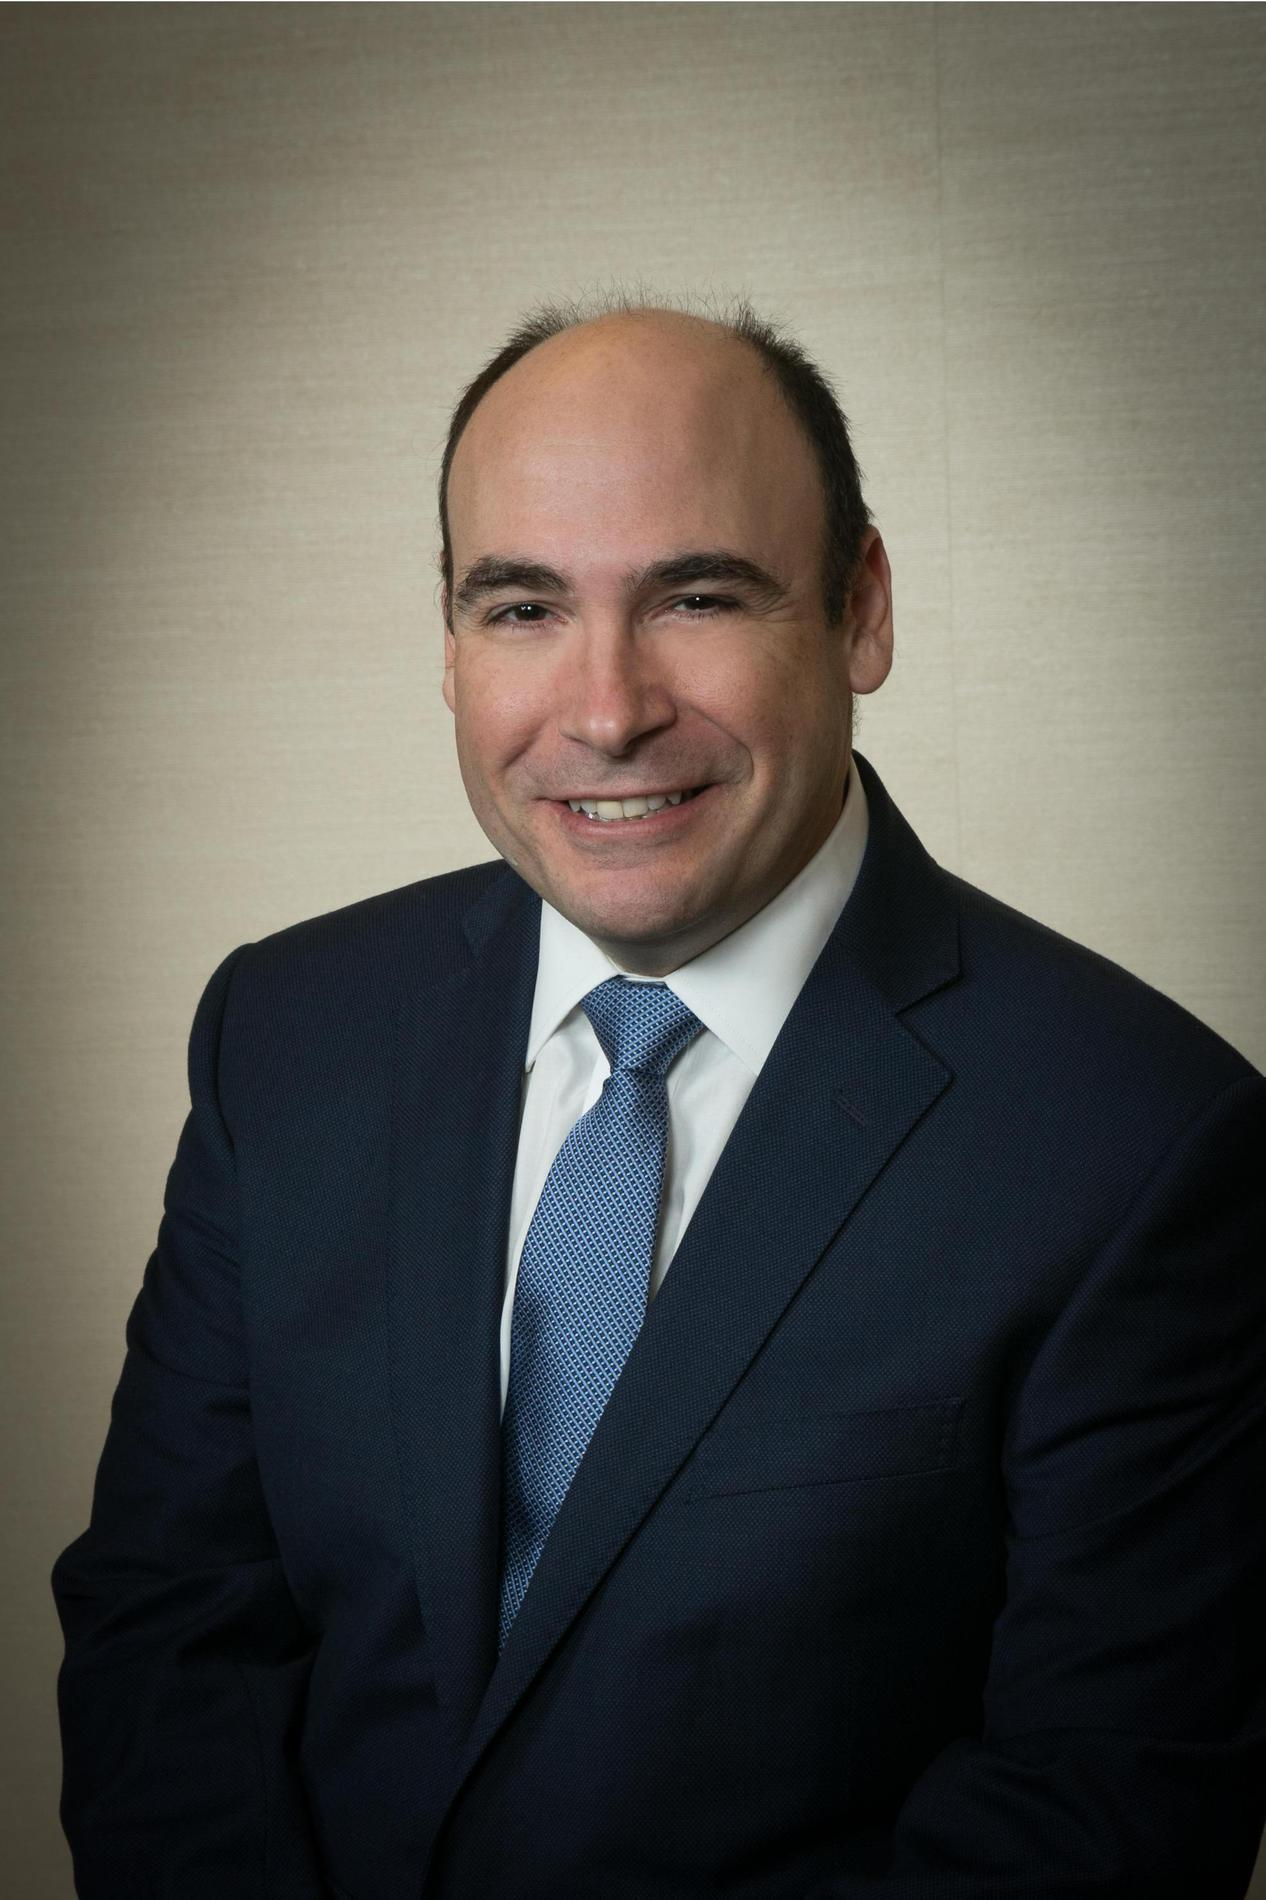 Paul Annunziato | Jericho, NY | Morgan Stanley Wealth Management